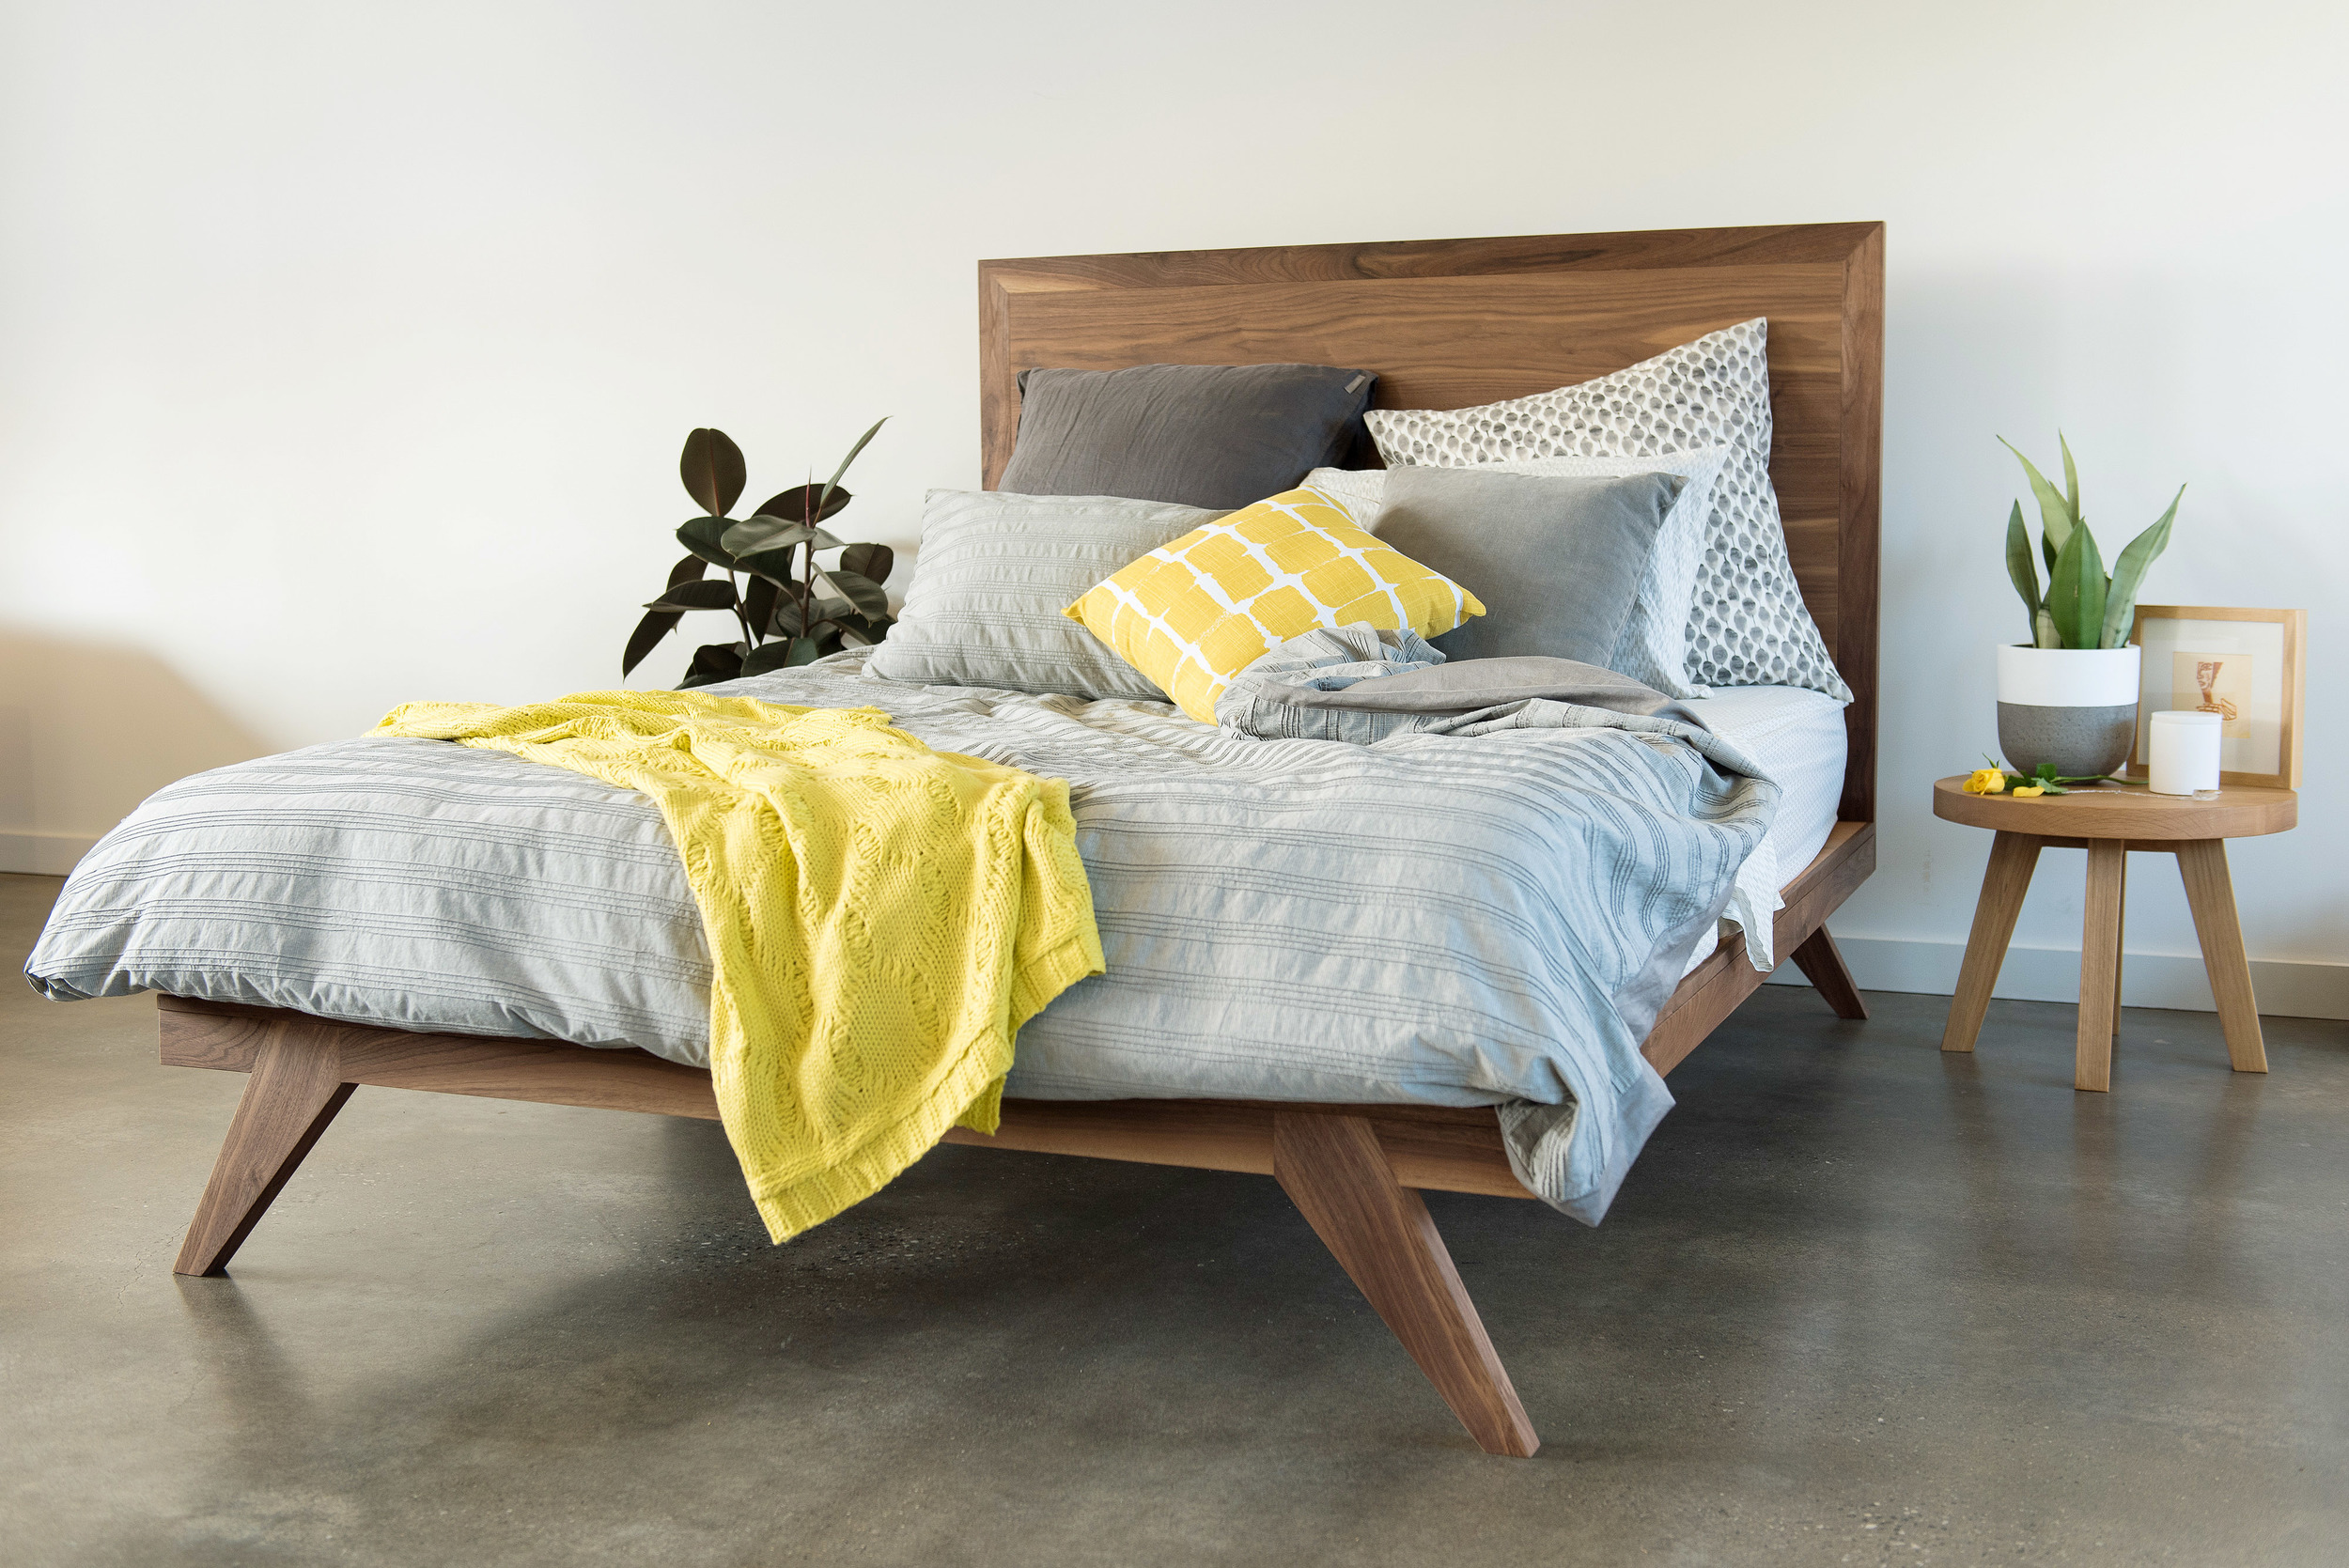 custom made timber bed